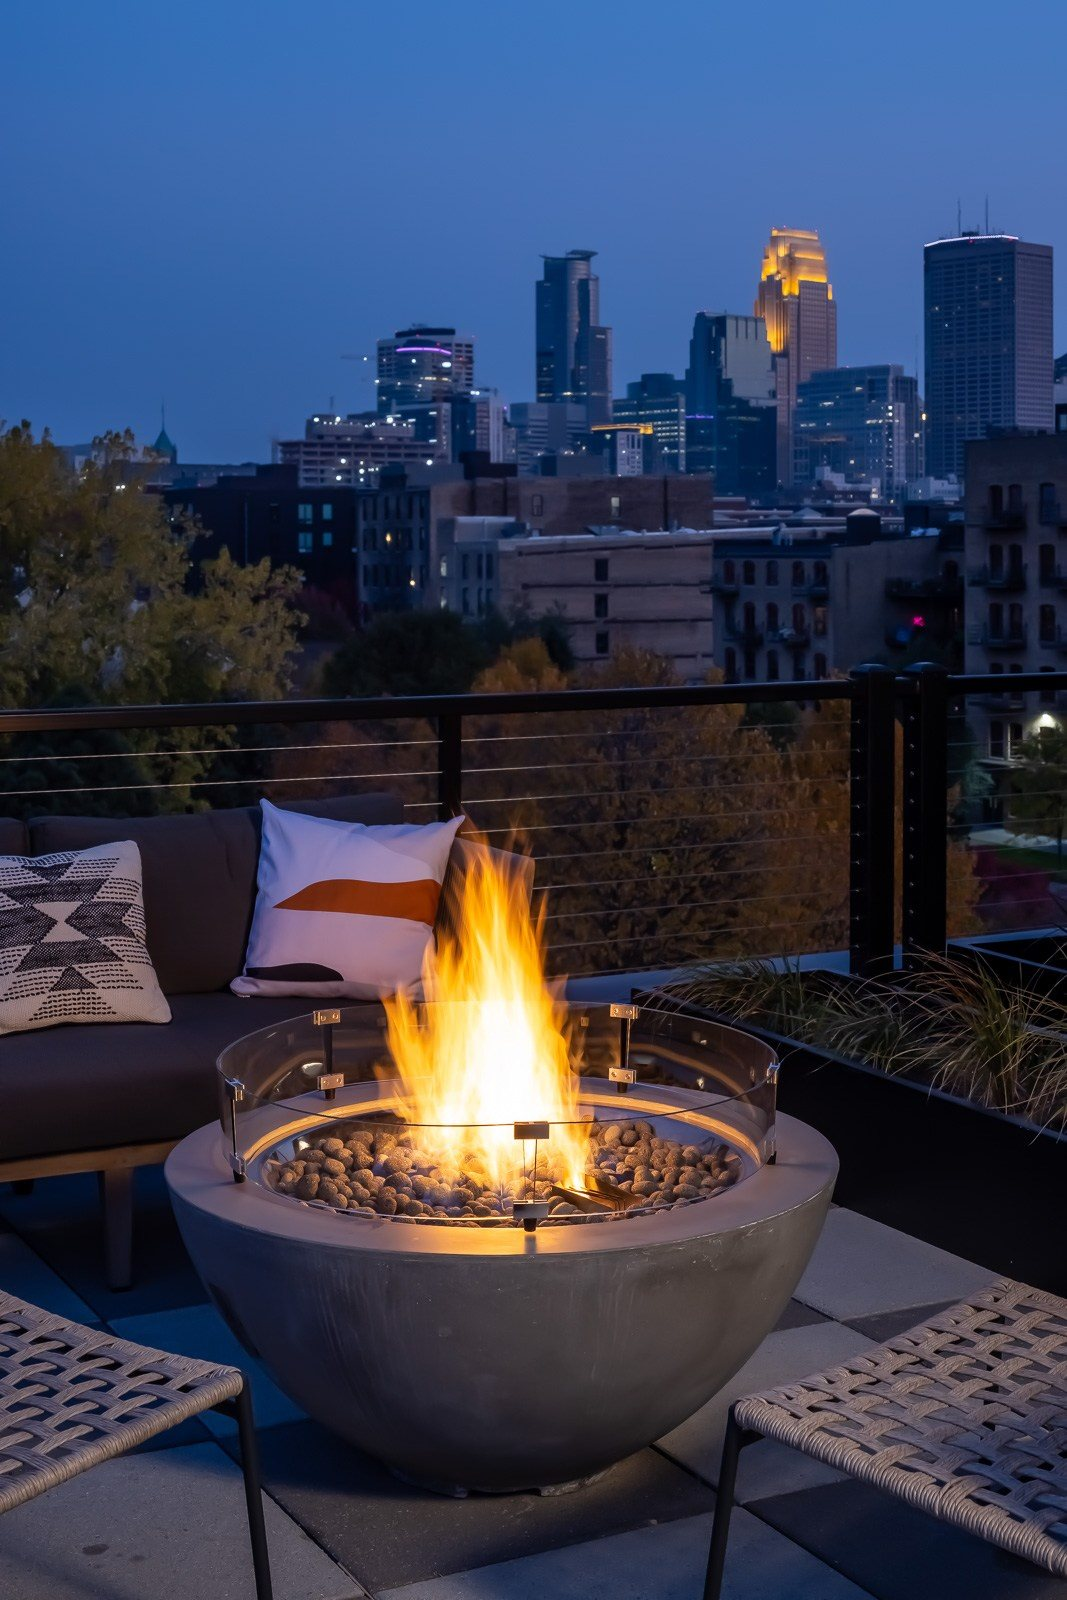 View of downtown minneapolis from rooftop lounge terrace at Vesi apartments